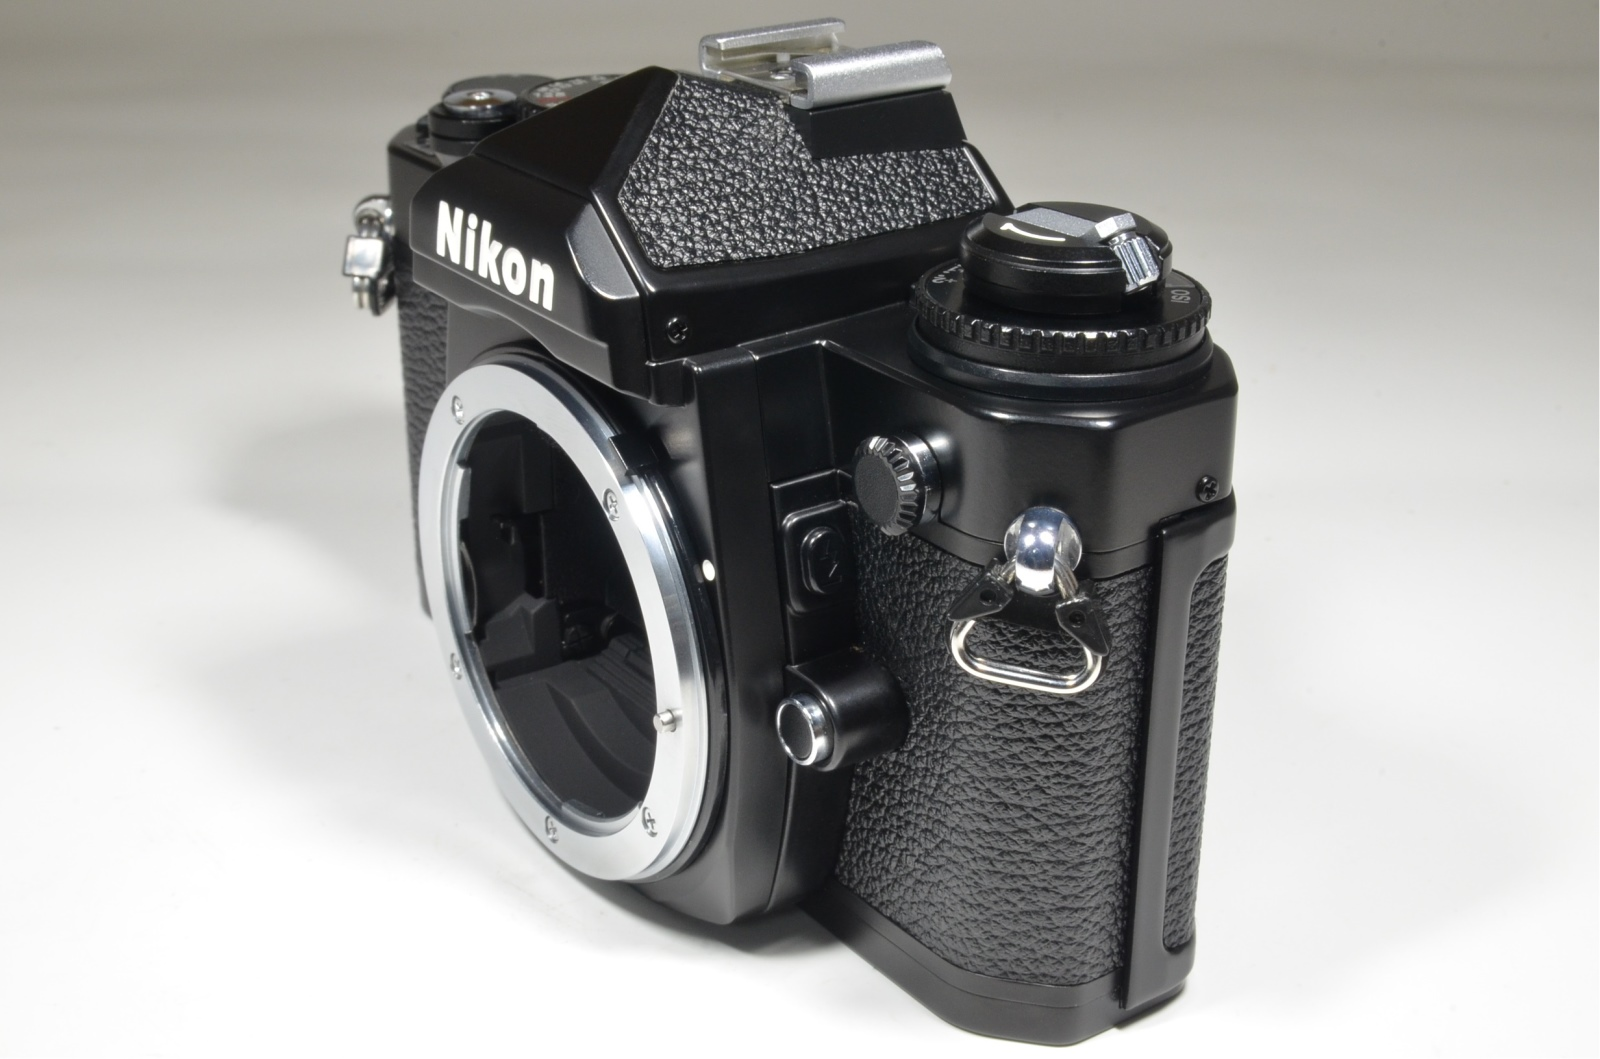 nikon fm3a 35mm film camera black with cf-27